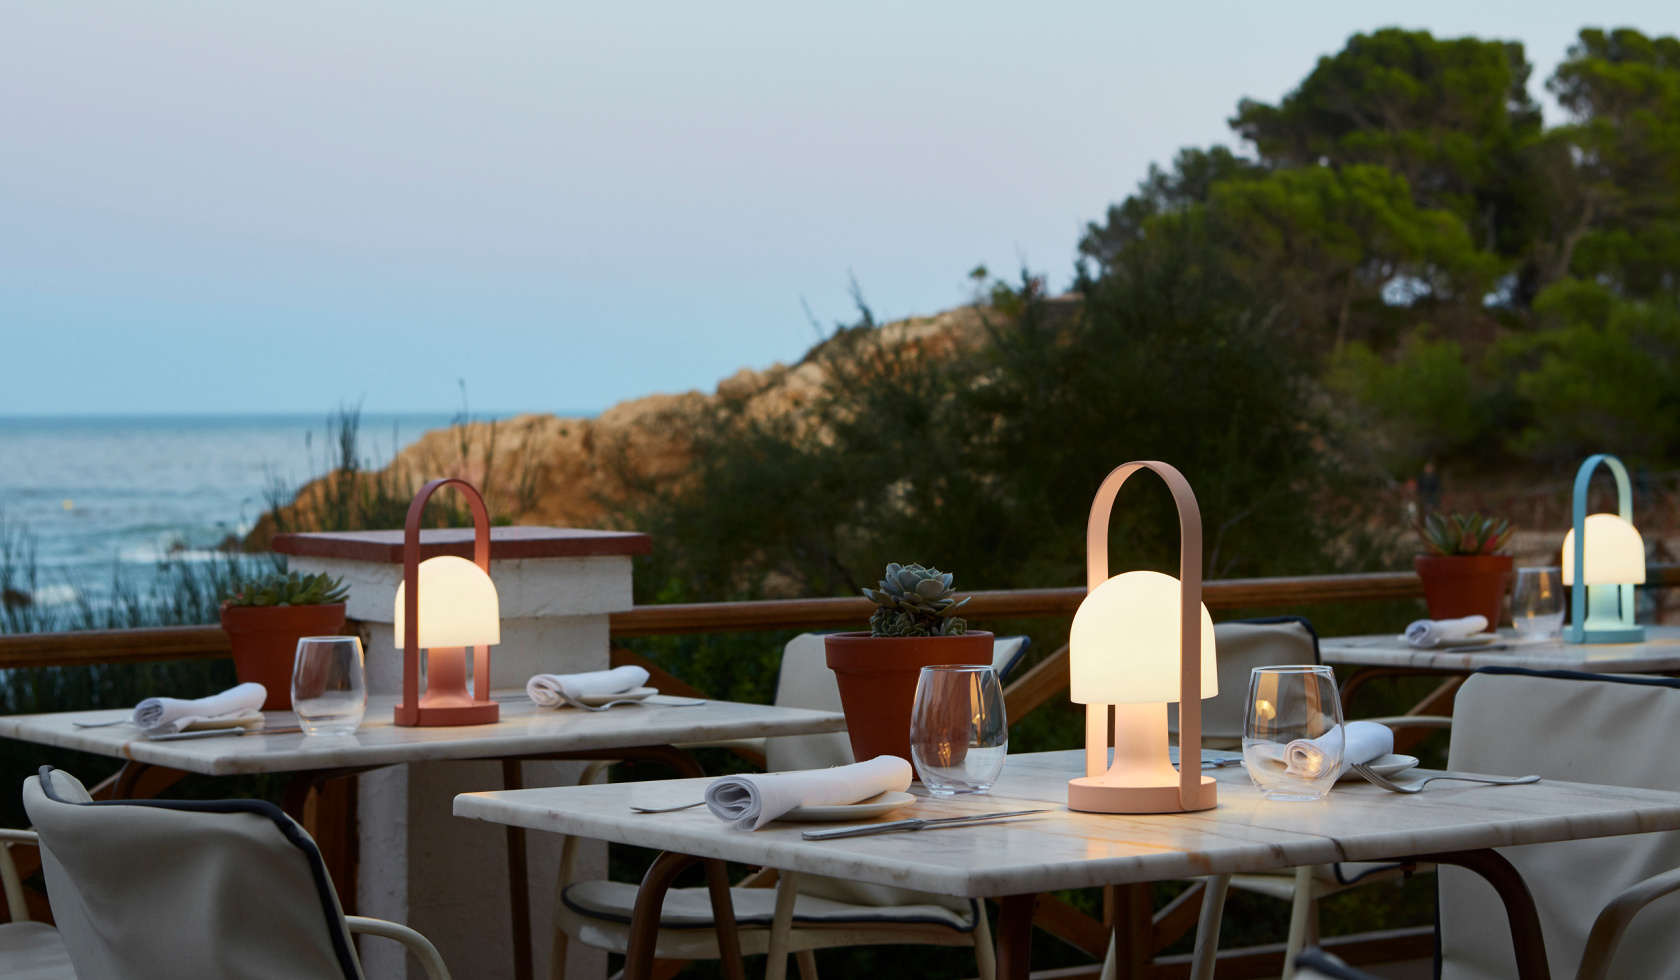 Portable lights on outdoor tables with a view of the sea